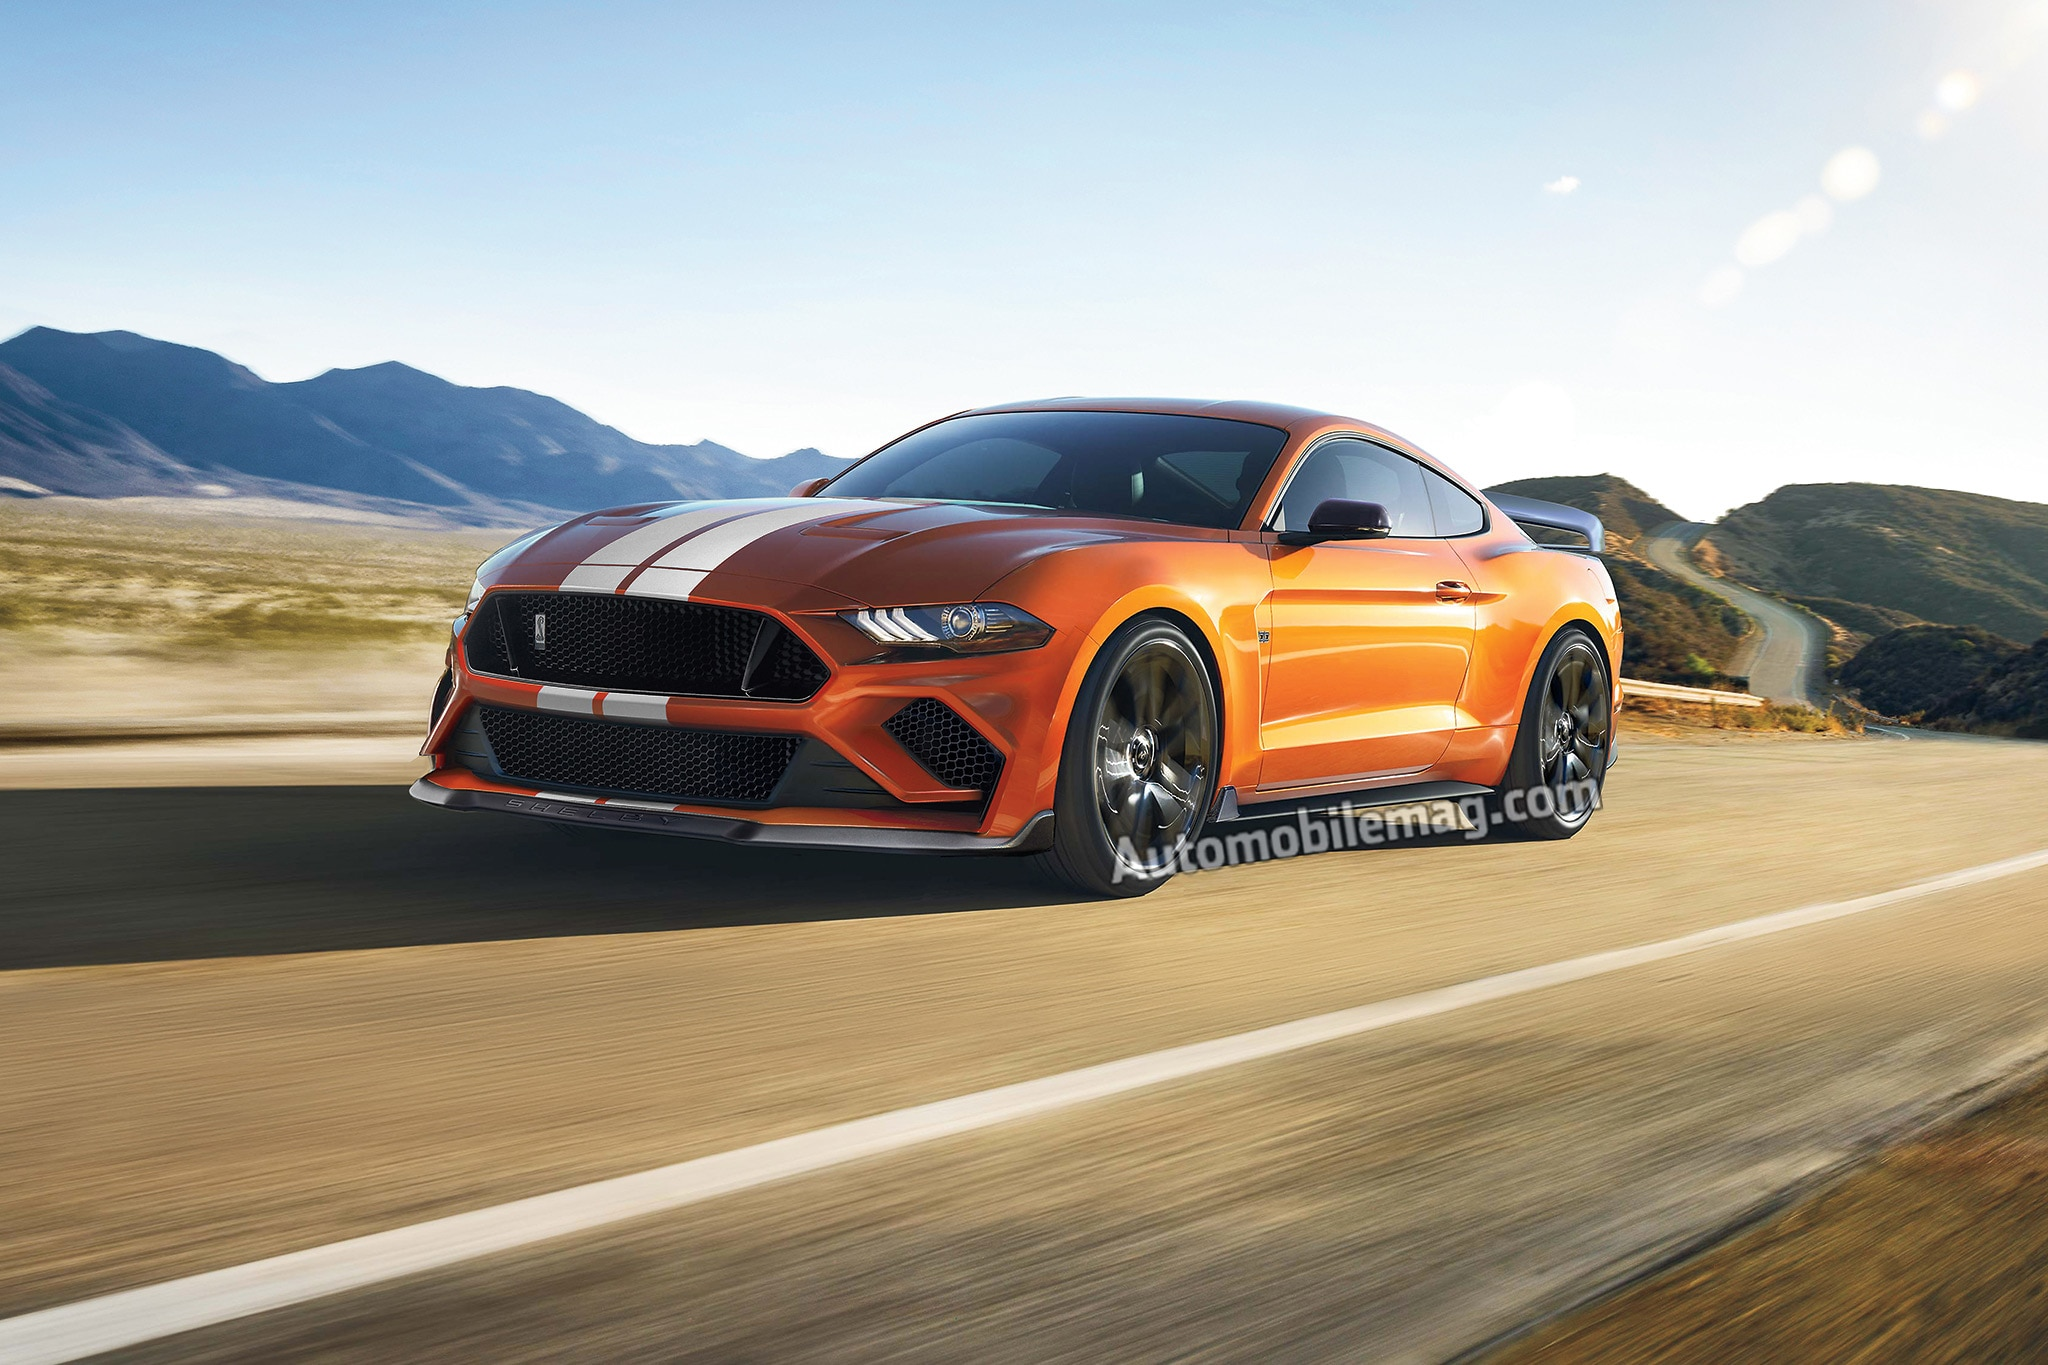 91 All New 2019 Ford Mustang Gt500 Exterior